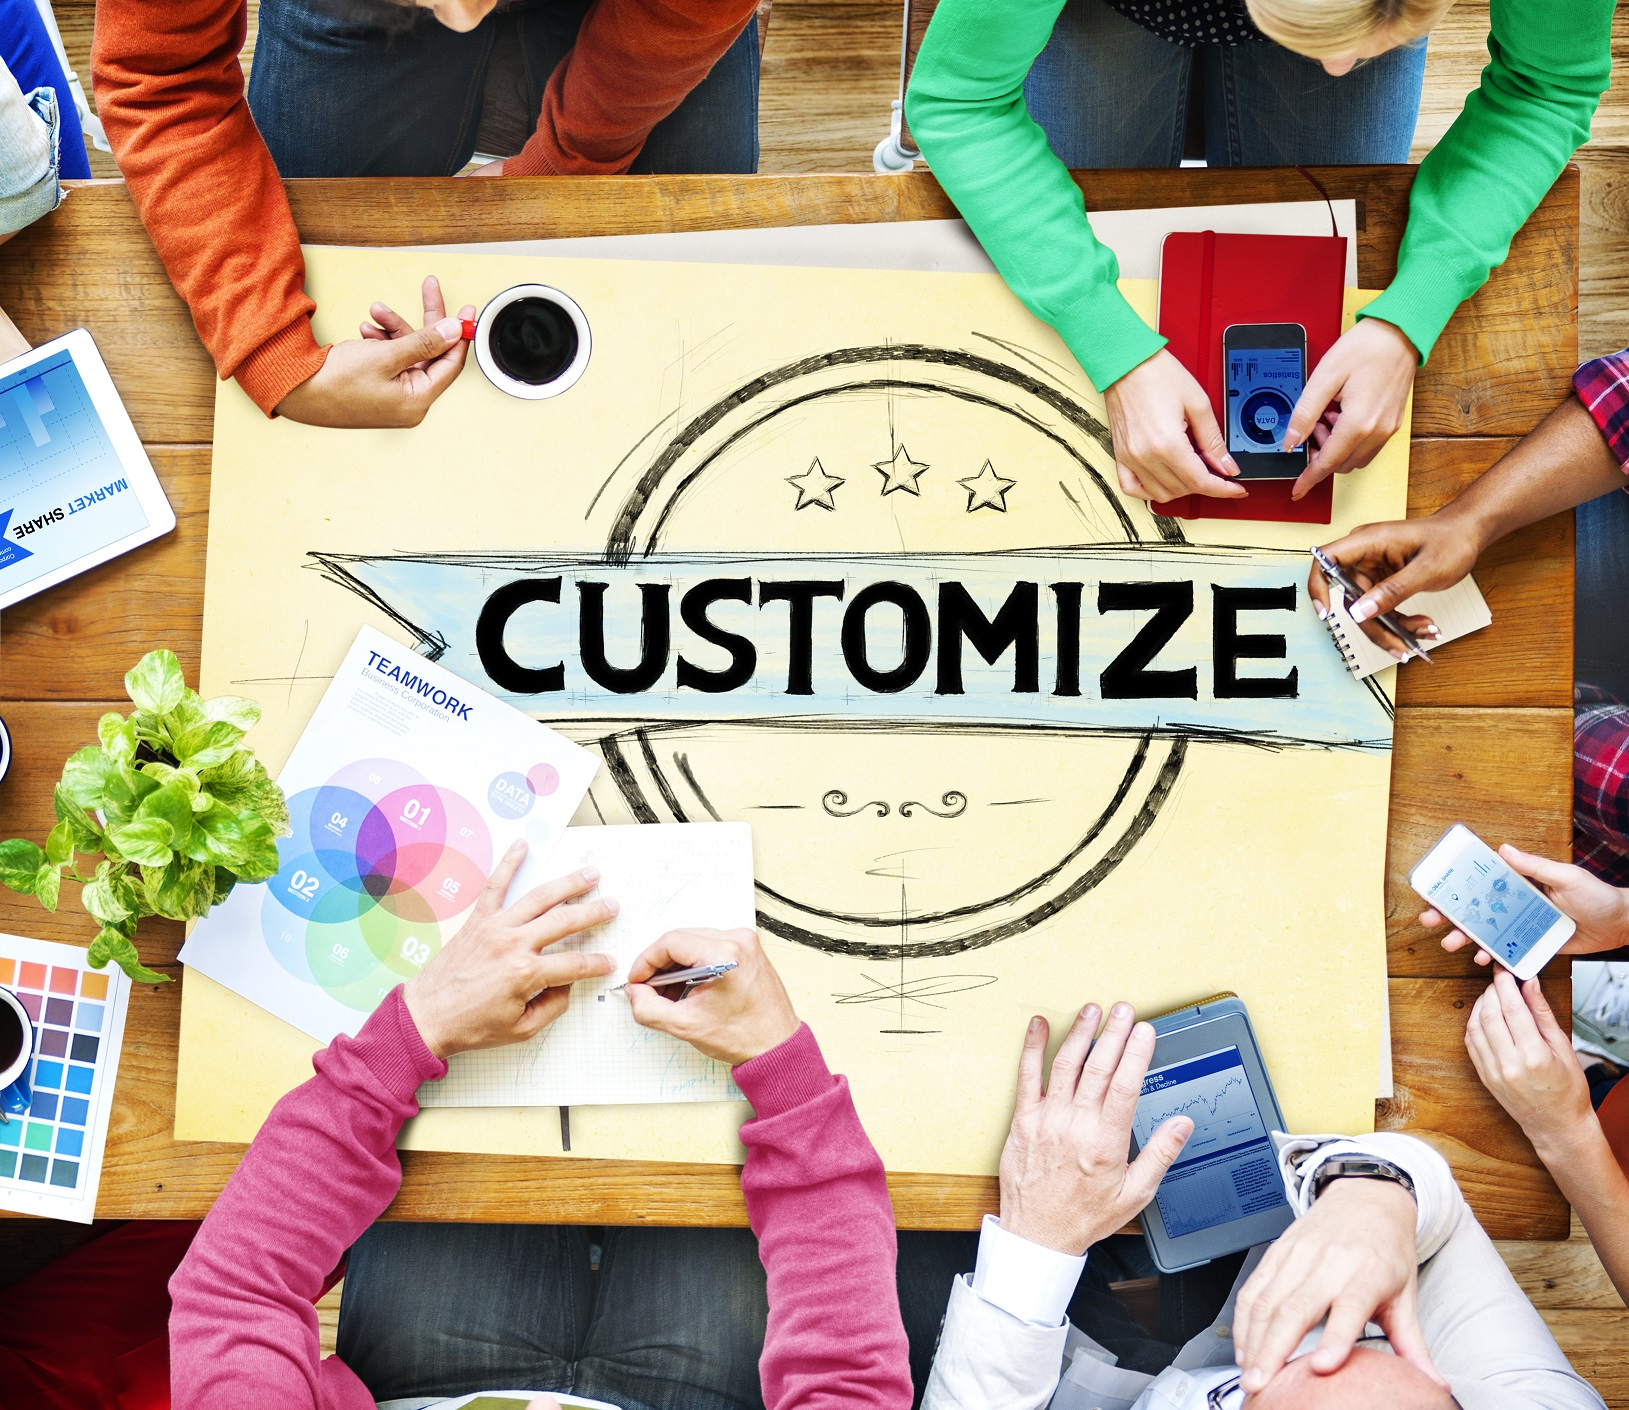 Customize Customization Customizing Change Concept